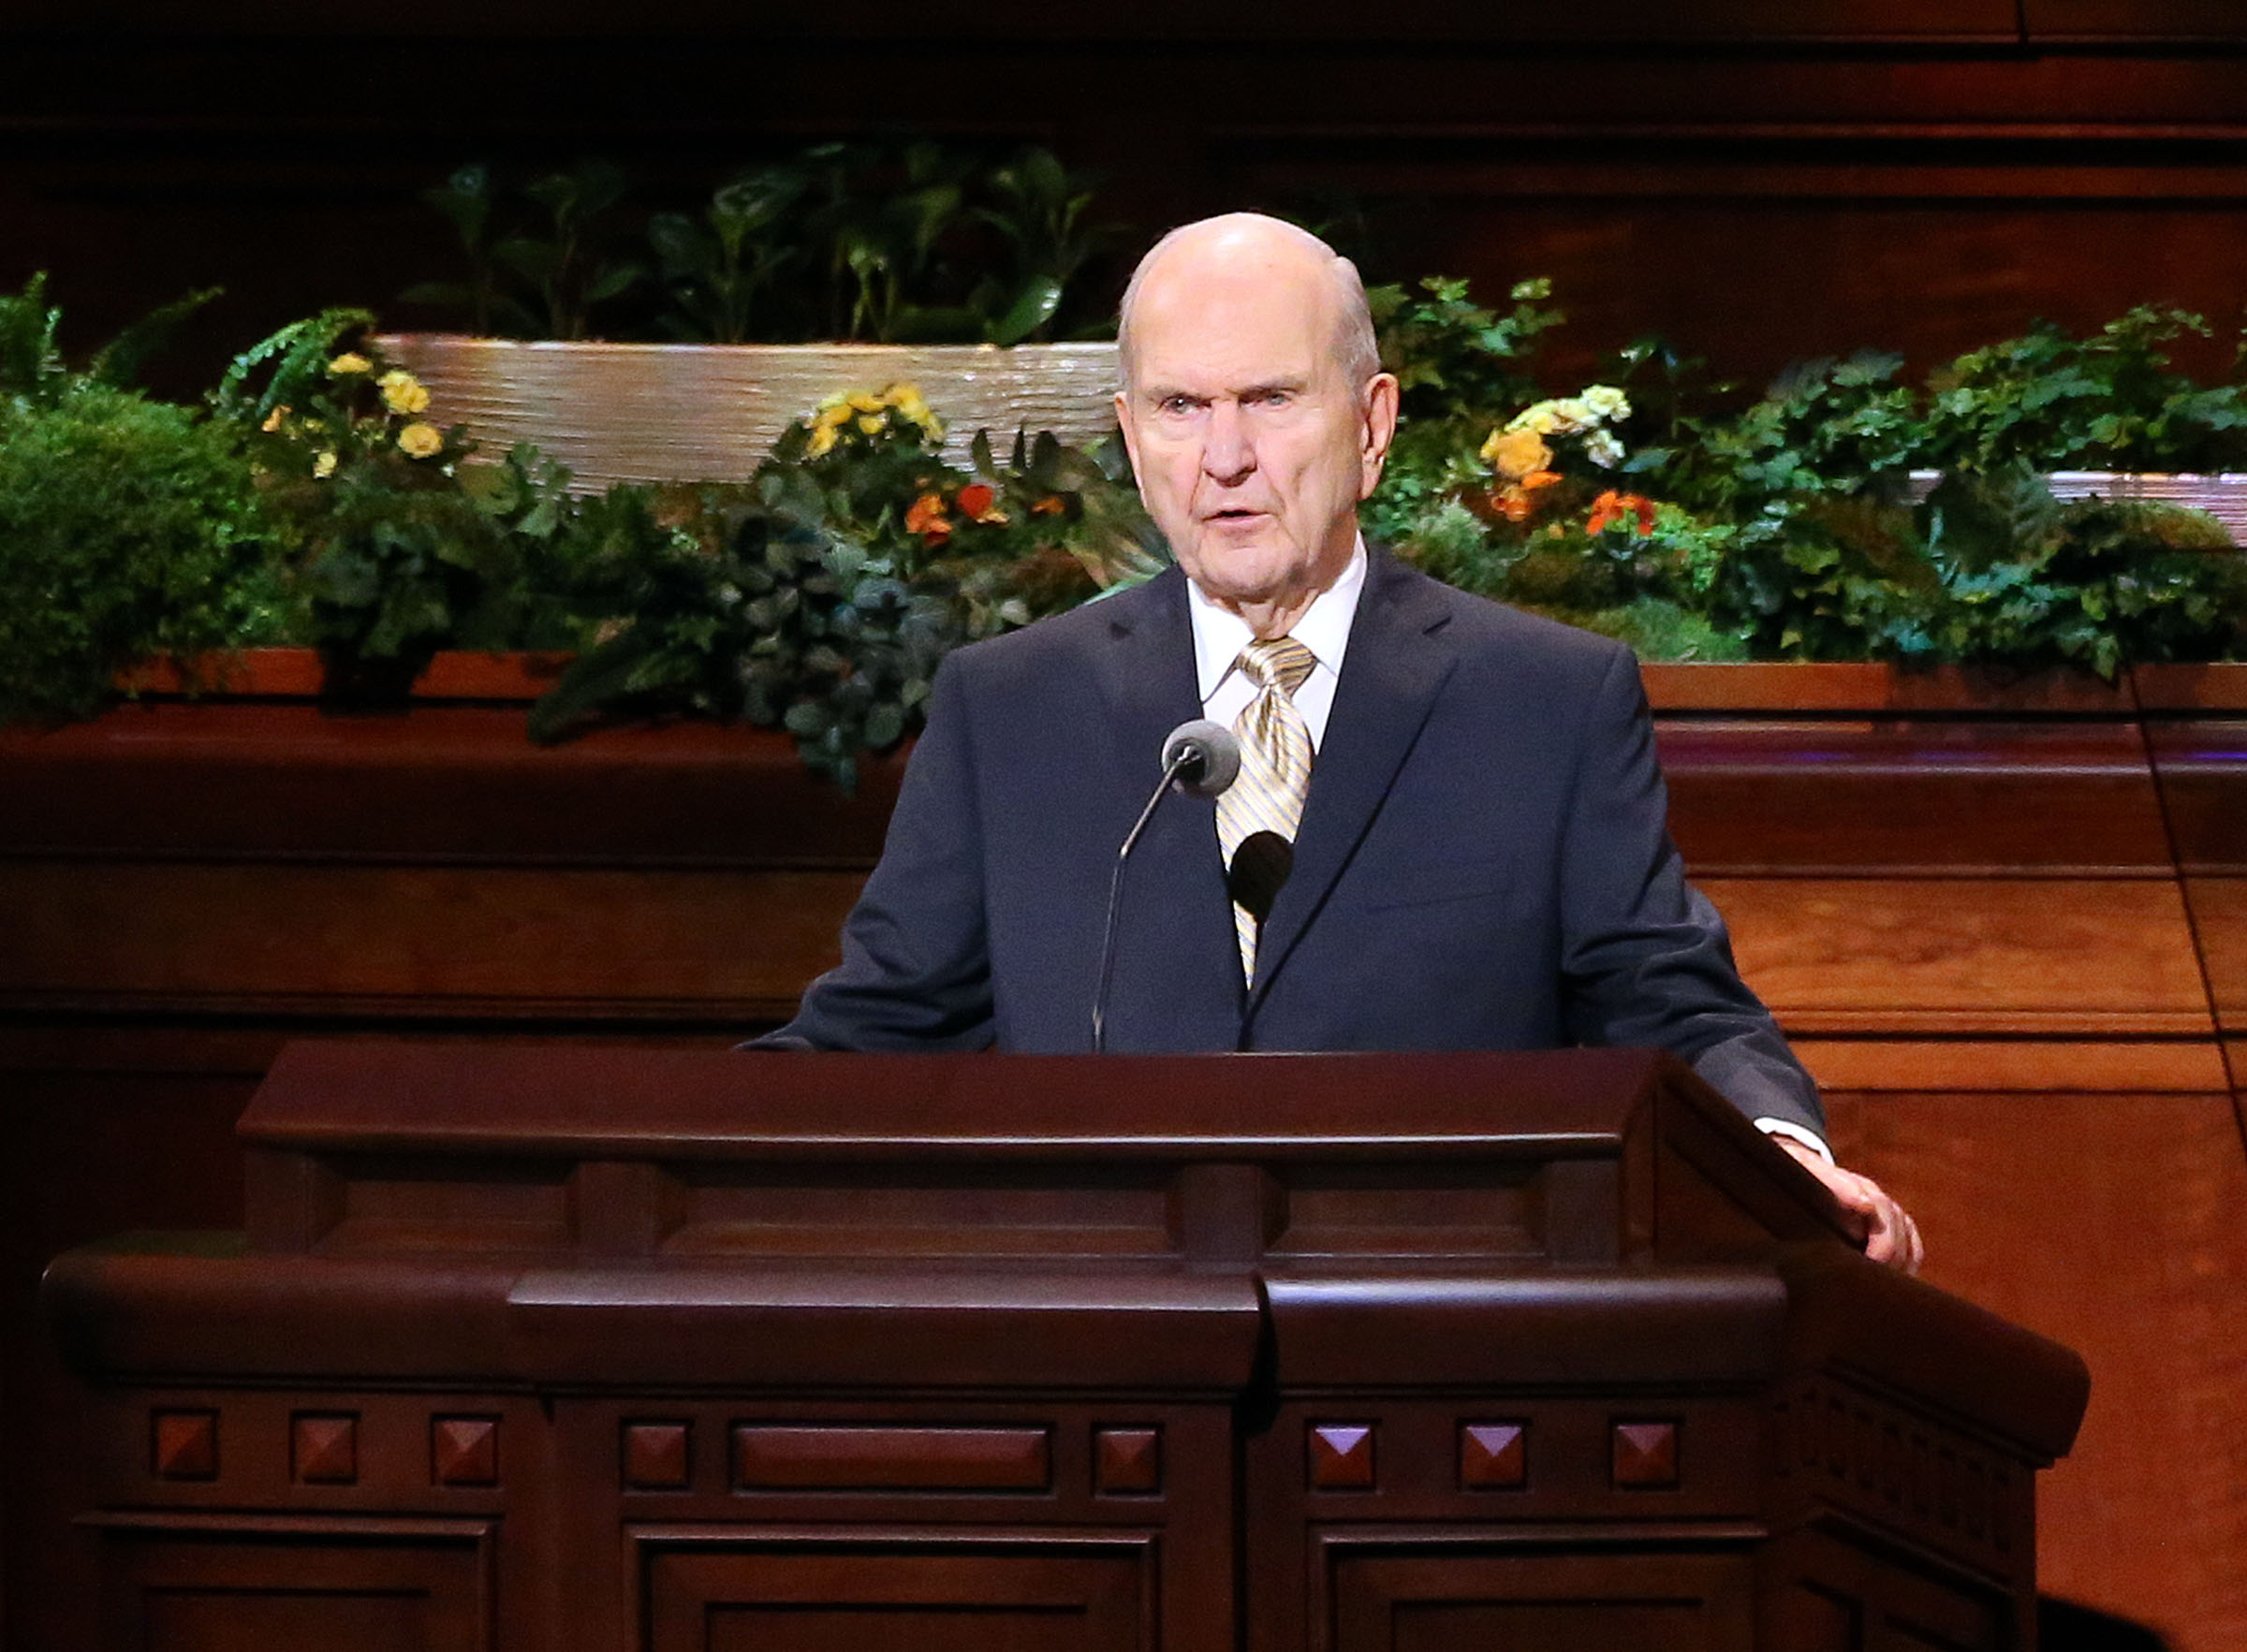 LDS Church President Russell M. Nelson announces that ministering will replace home and visiting teaching programs during the Sunday afternoon session of the 188th Annual General Conference of The Church of Jesus Christ of Latter-day Saints at the Conference Center in Salt Lake City on Sunday, April 1, 2018.